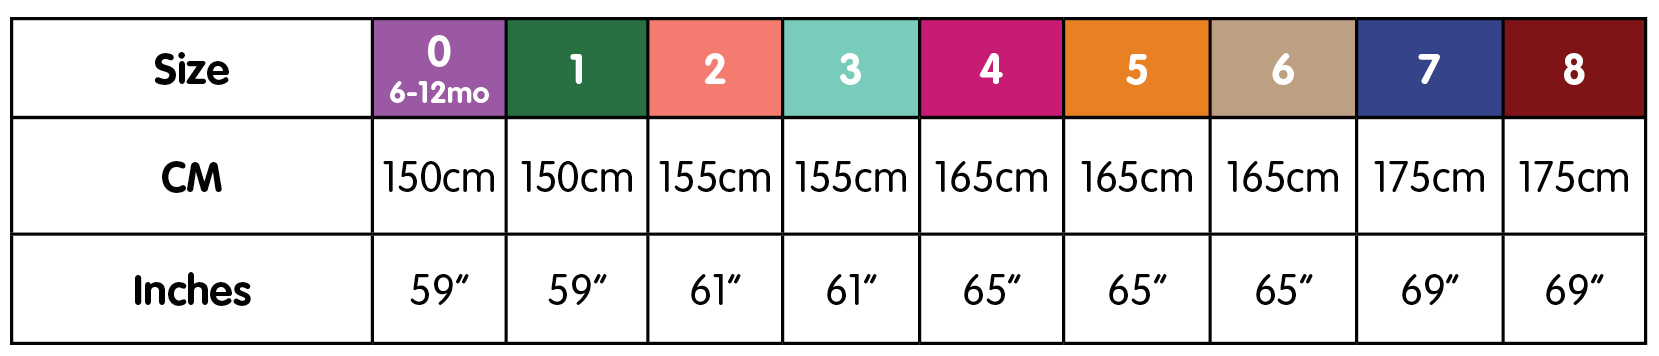 Tea Party Sleeves measurement table 1